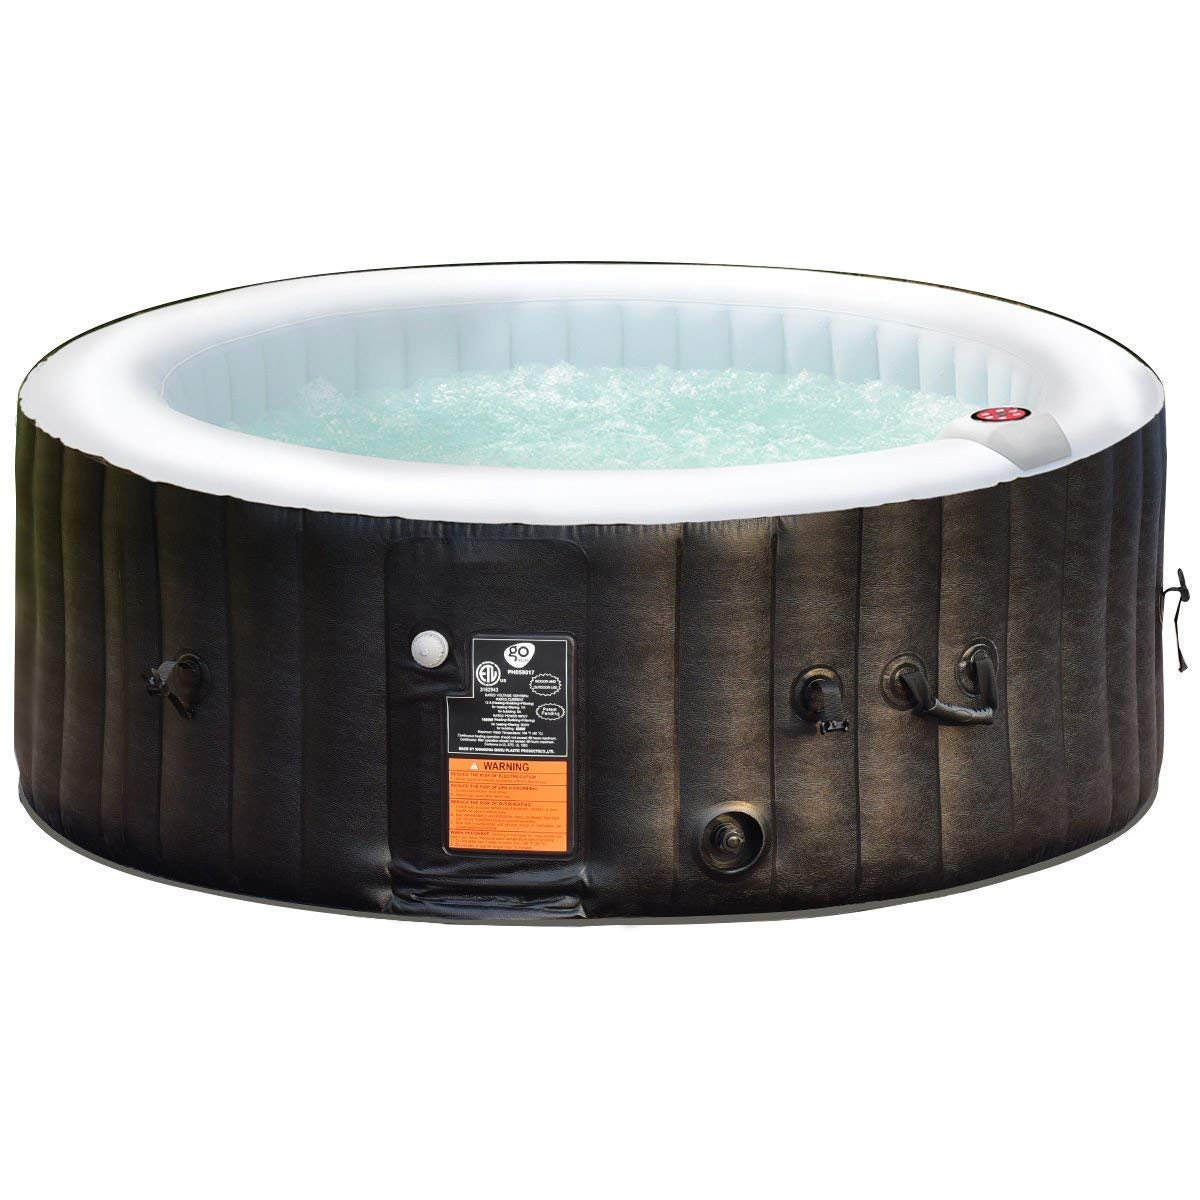 Amazon.com : Goplus 4-6 Person Outdoor Spa Inflatable Hot Tub for ...